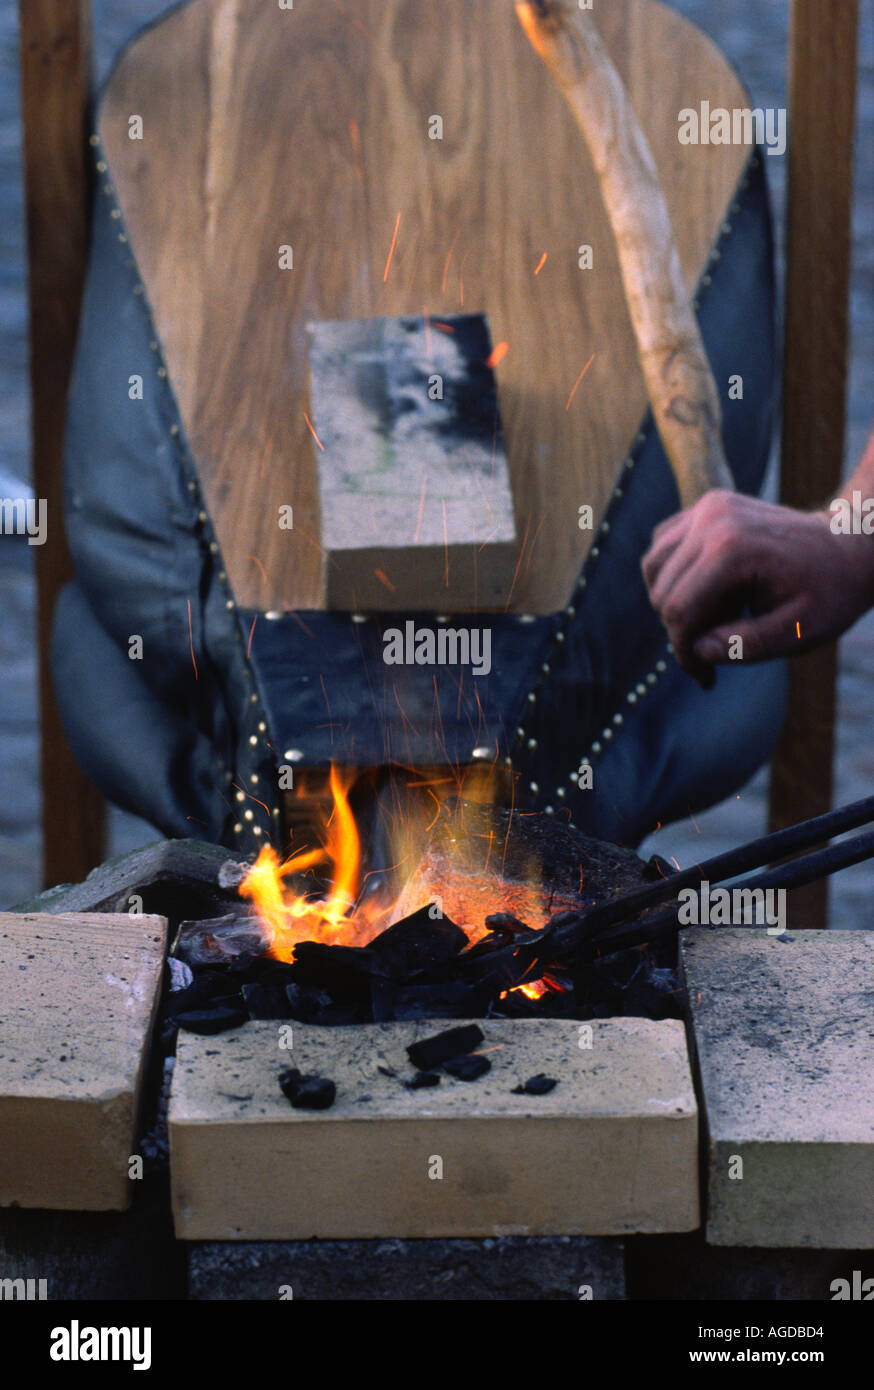 A forge and bellow - Stock Image